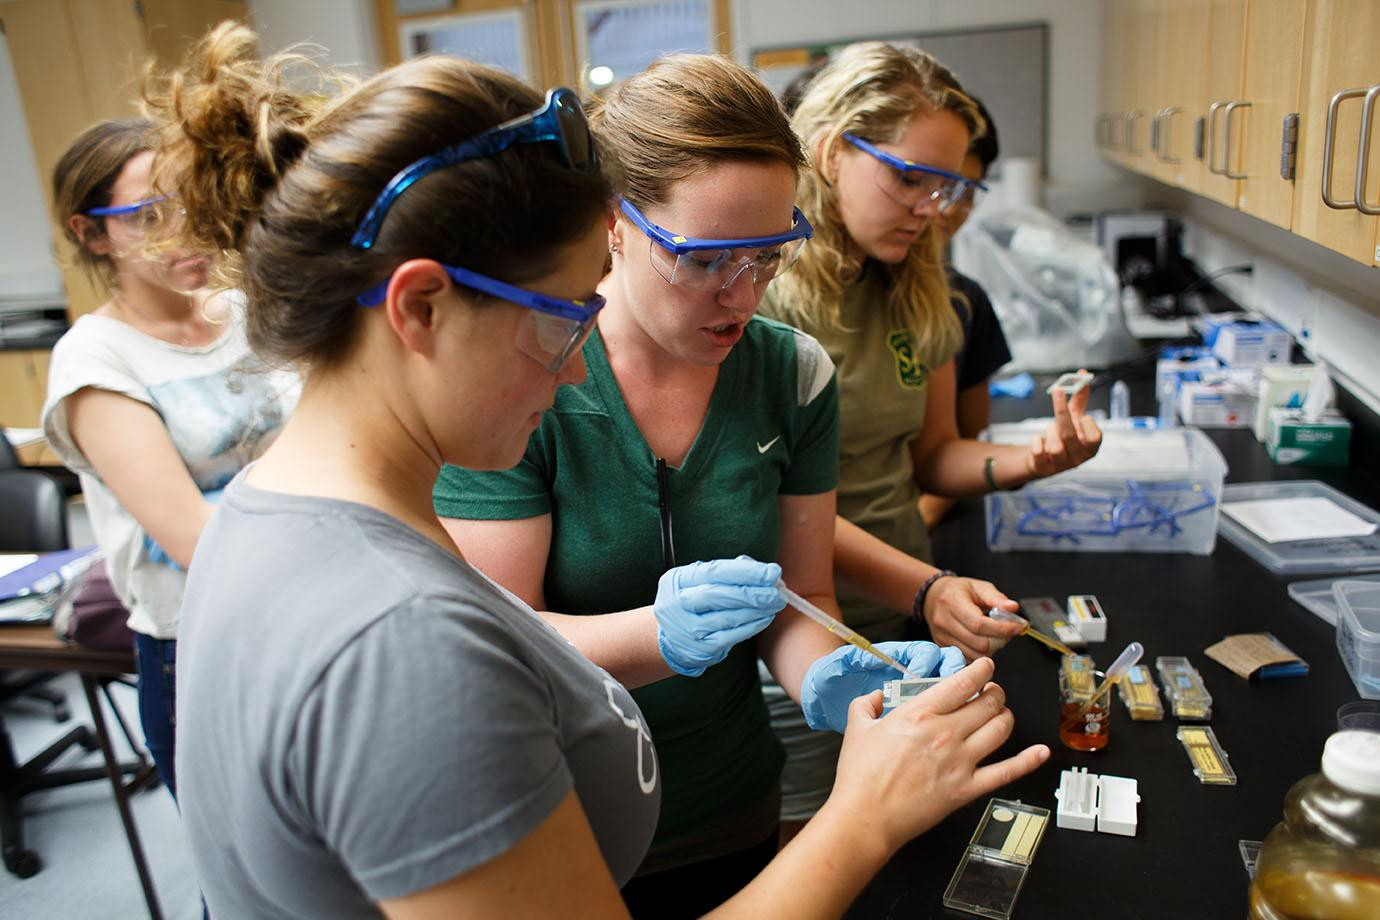 Karen Backe (left) and Lindsay Faye (center), both marine science grad students, prepare a slide with a sample of phytoplankton during their biological oceanography class at The Romberg Tiburon Center on Monday, Sept. 21, 2015. (Ryan McNulty / Xpress)